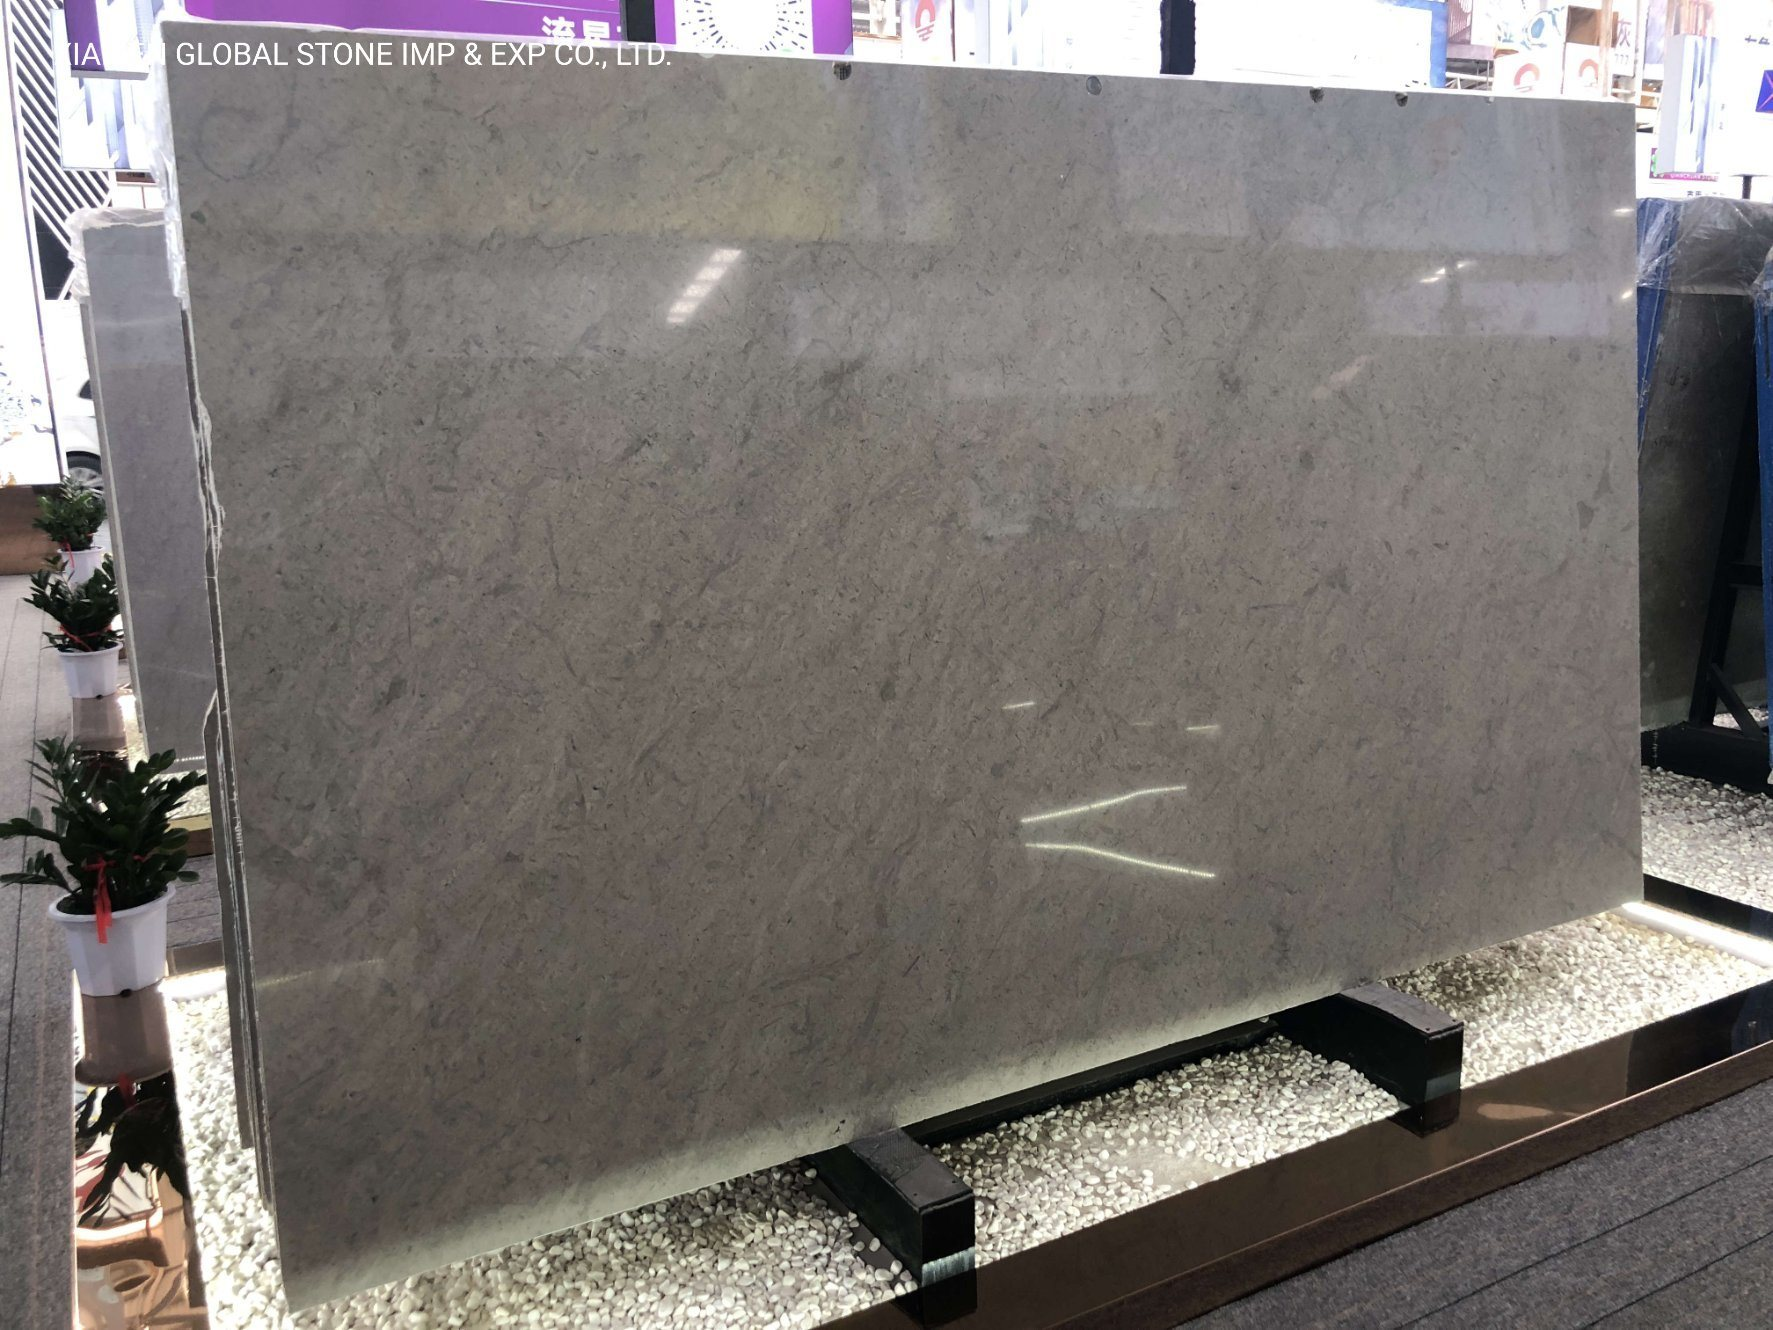 China Turkey Natural Stone White Black Beige Slabs Carbona Champagne Grey Marble For Kitchen Countertop Interior Wall Floor Design China Cut To Size Tiles Floor Tile